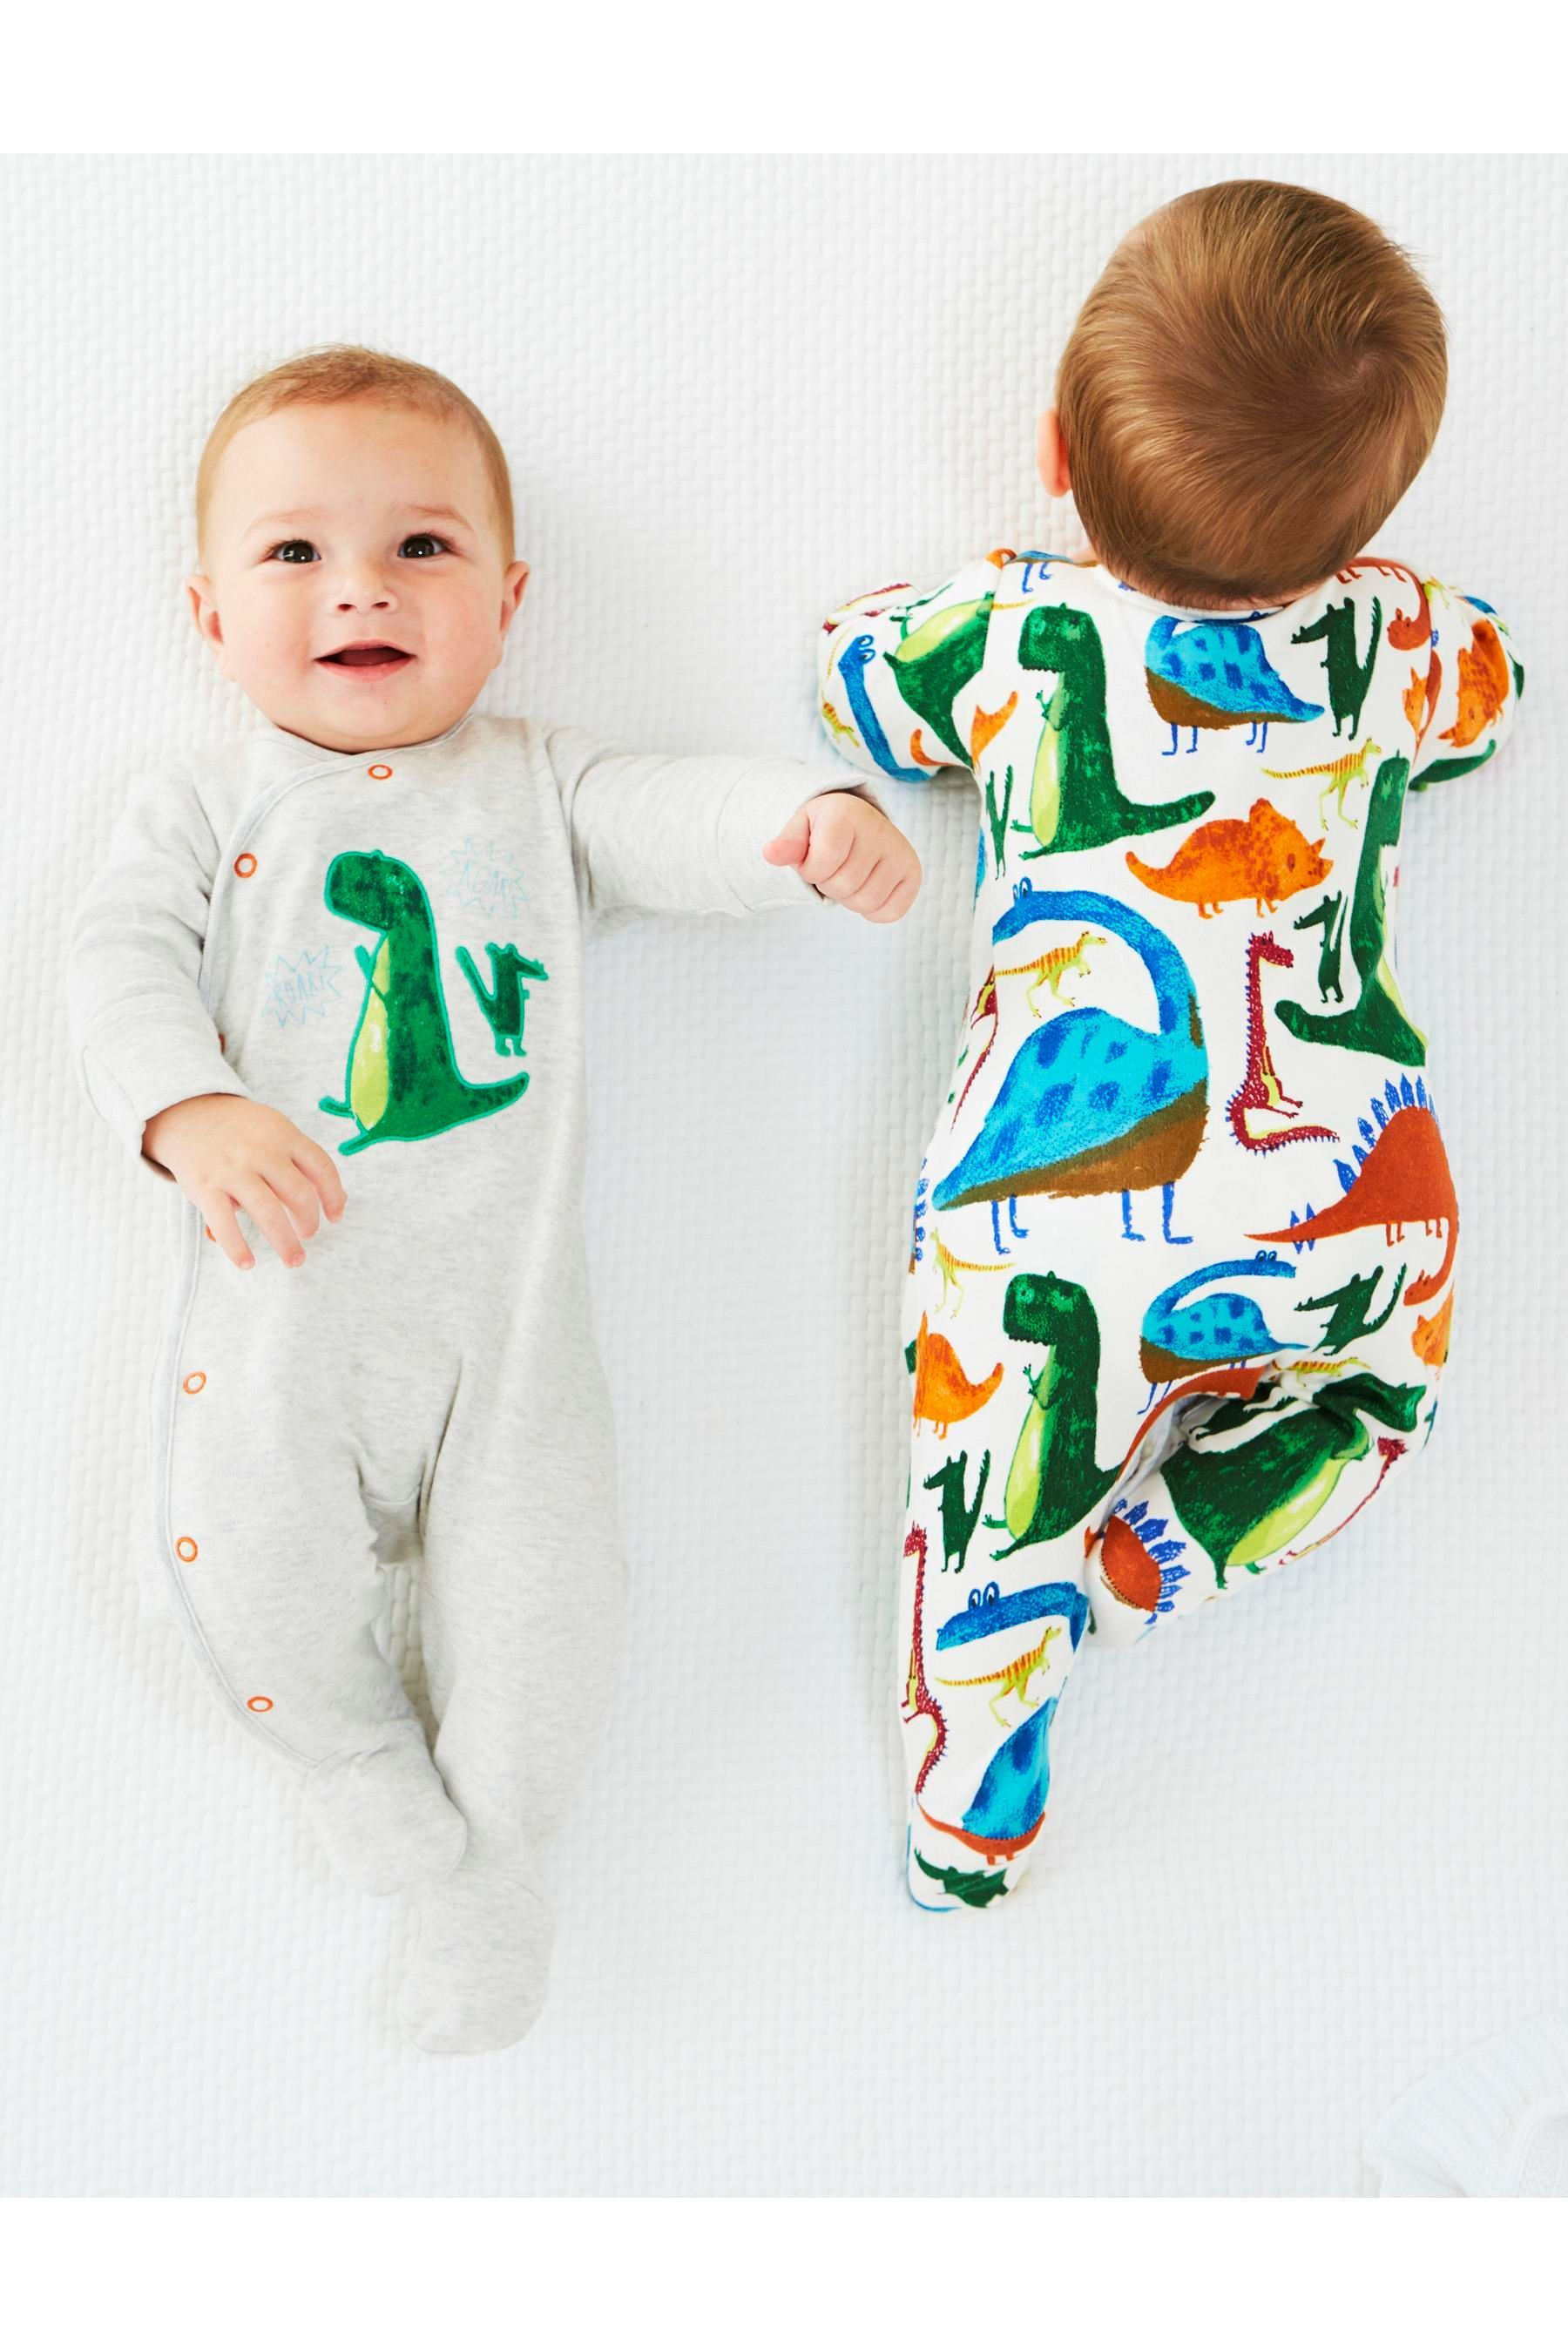 Hard-Working Junior J Boys Sleepsuits Age 3-6 Months Baby & Toddler Clothing Clothing, Shoes & Accessories